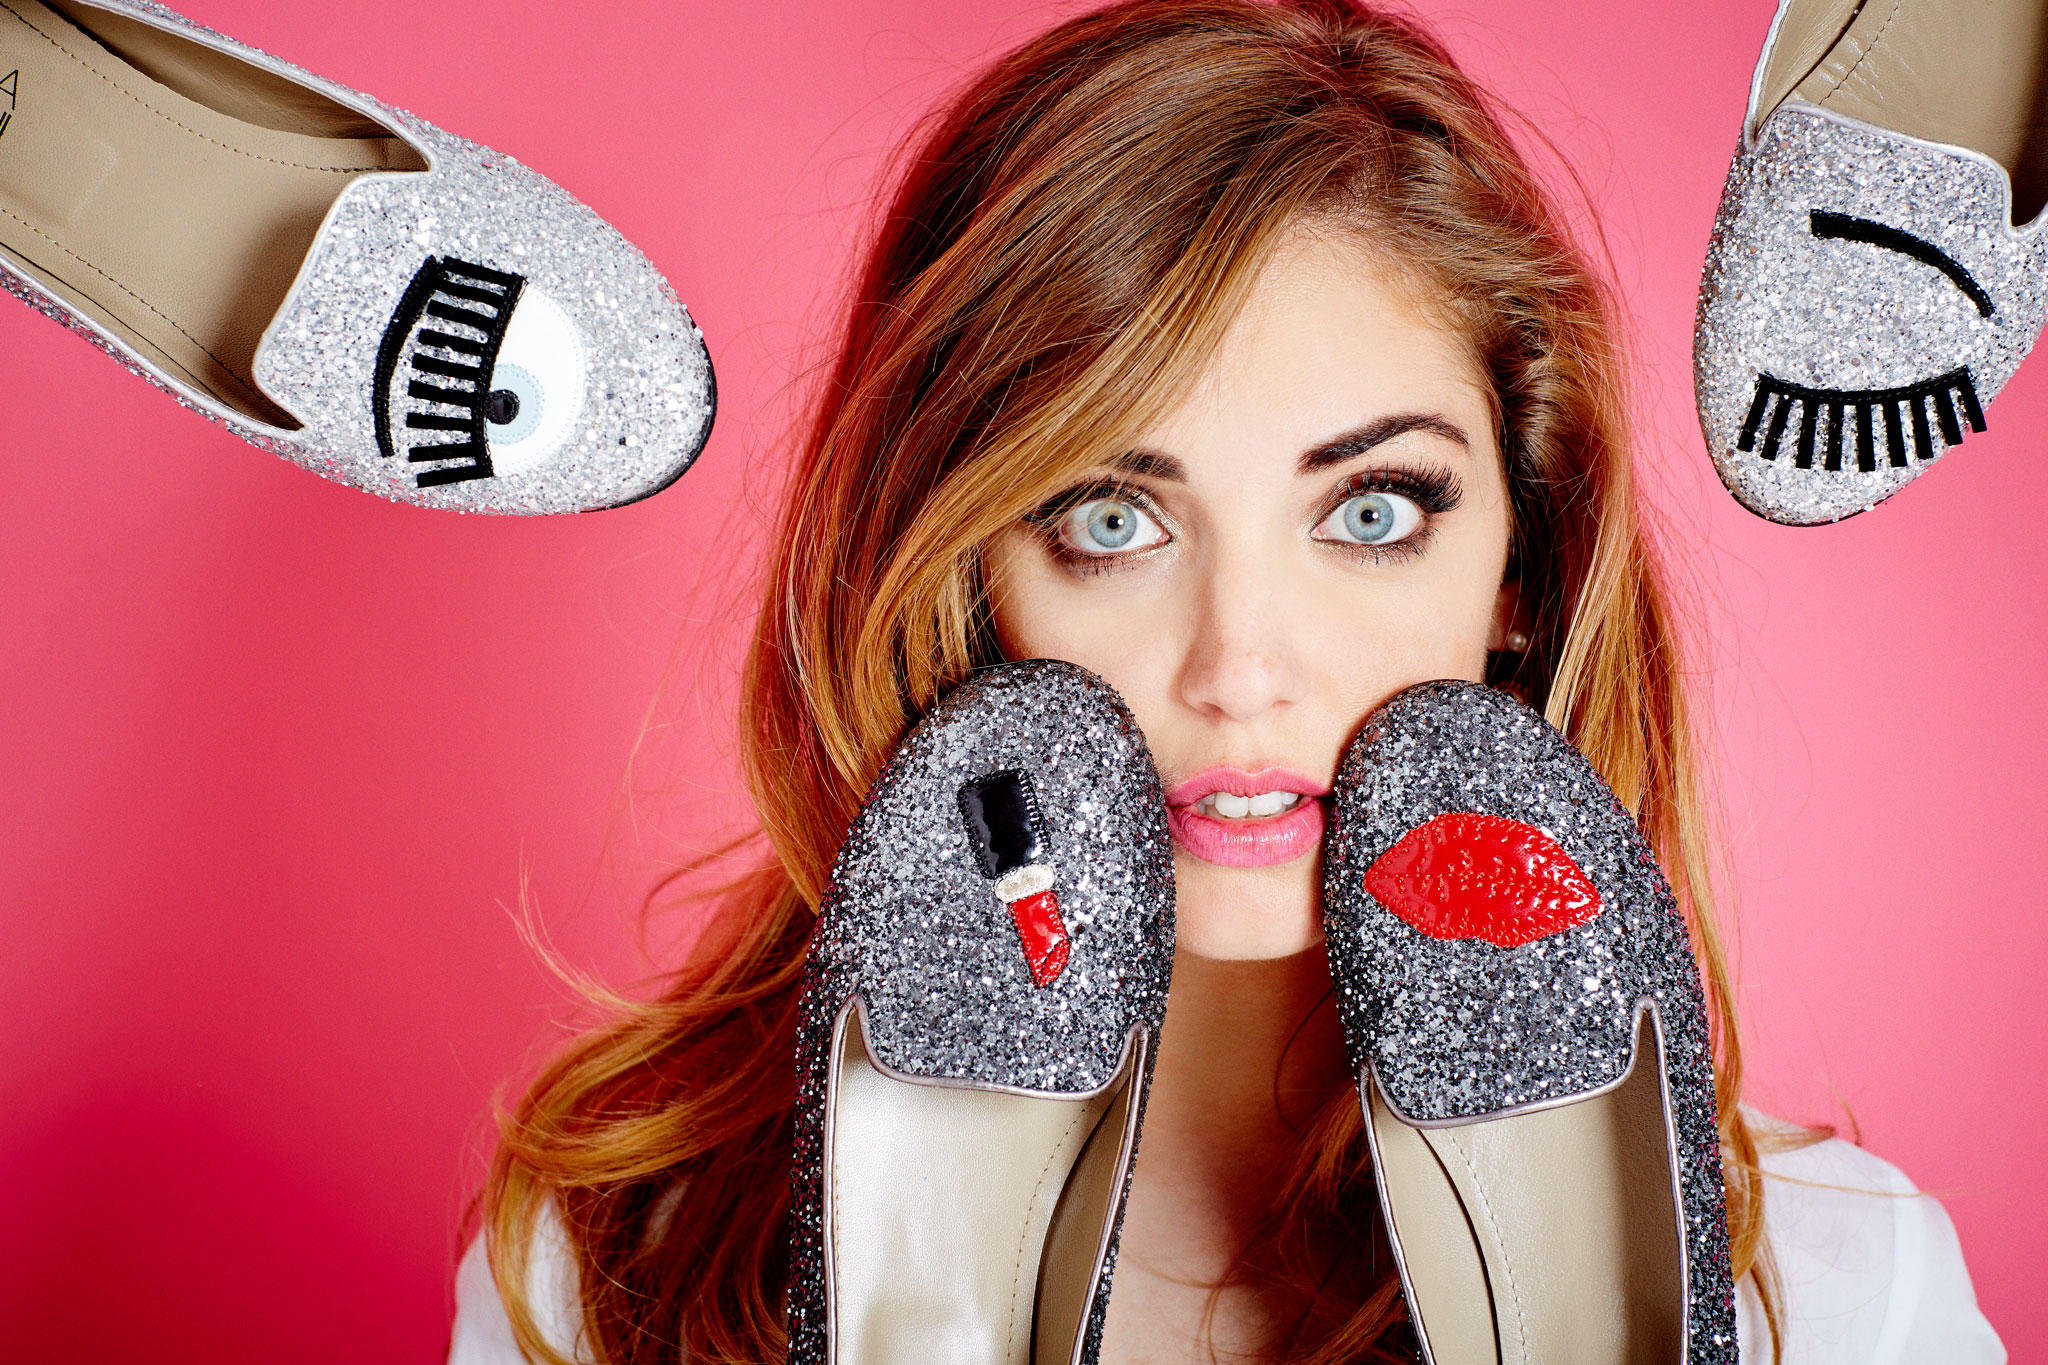 Up to Extra 30% Off Chiara Ferragni Shoes @ Lord & Taylor